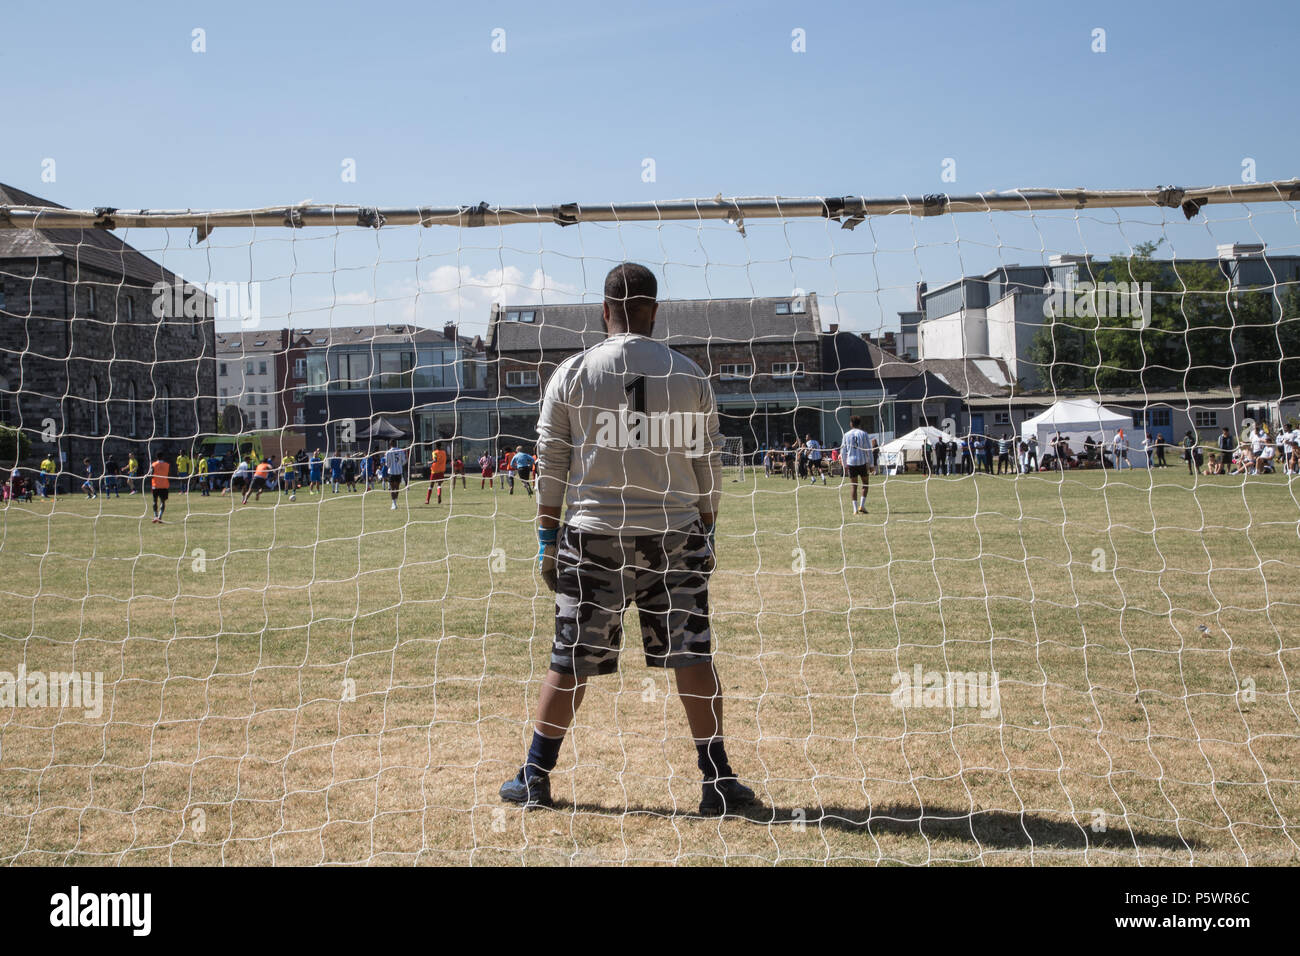 A goalkeeper waiting for penalty shoot out. - Stock Image